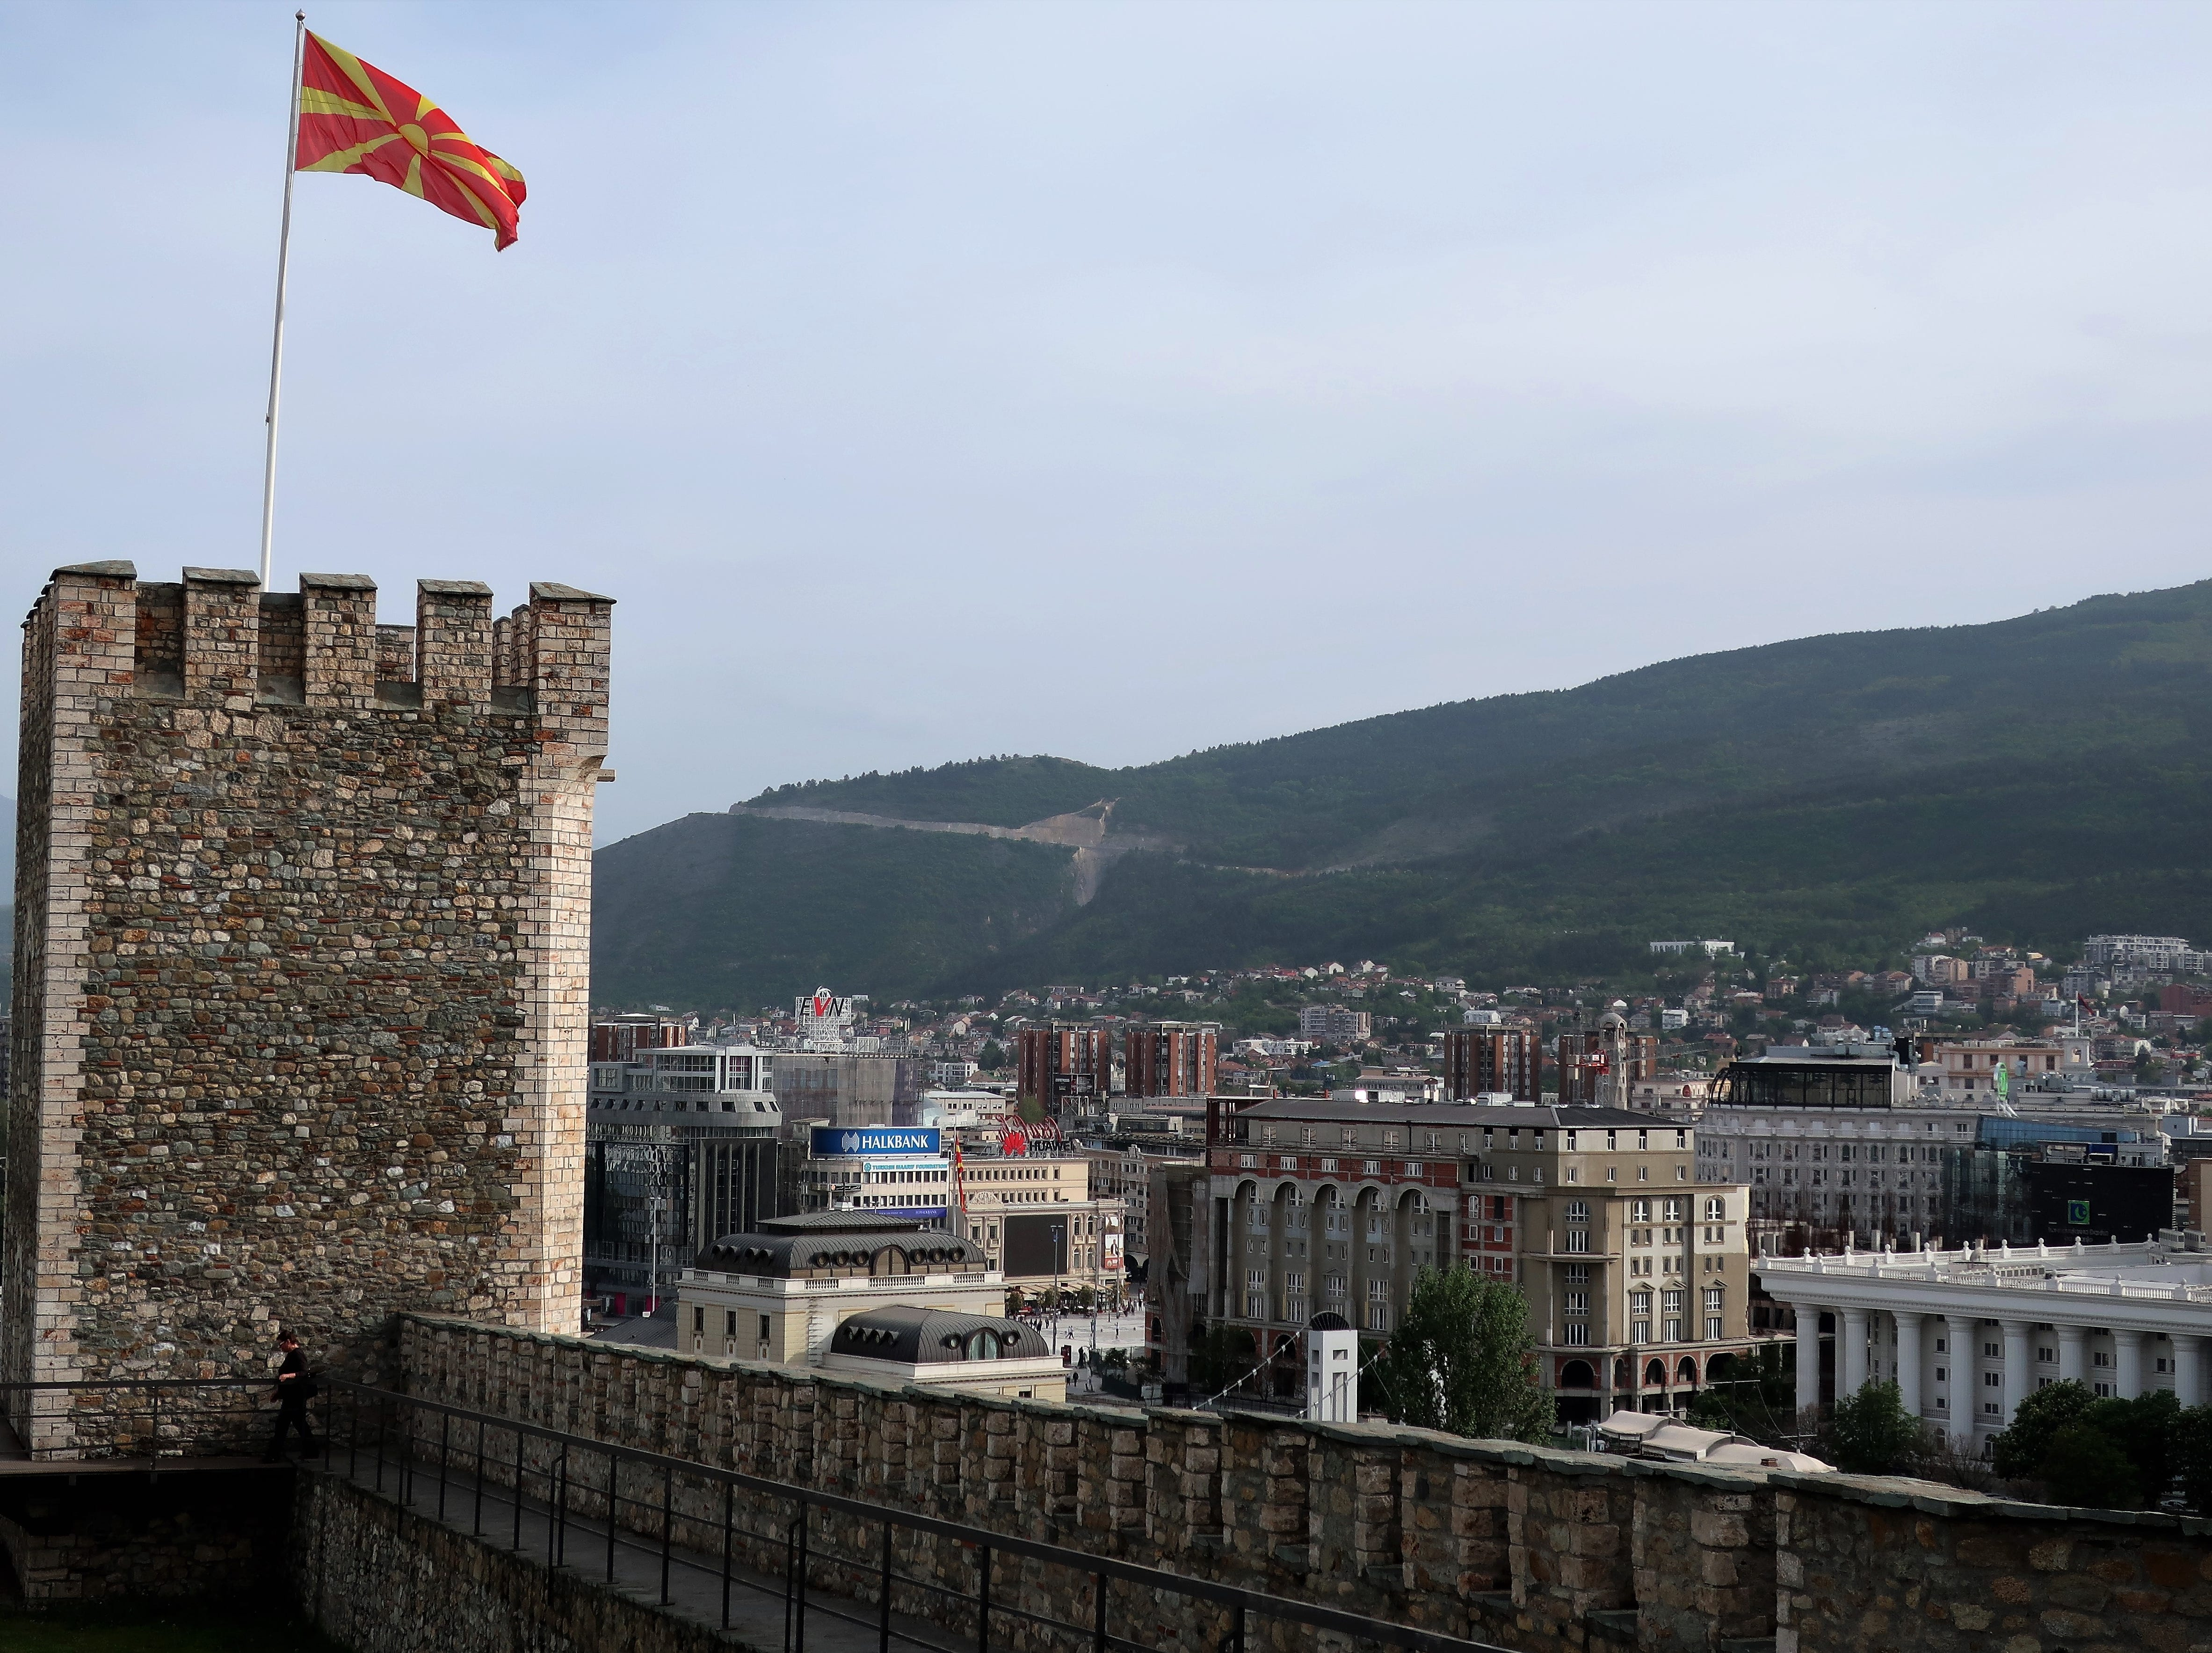 The view of Skopje, North Macedonia's capital city, from the sixth-century Skopje Fortress.